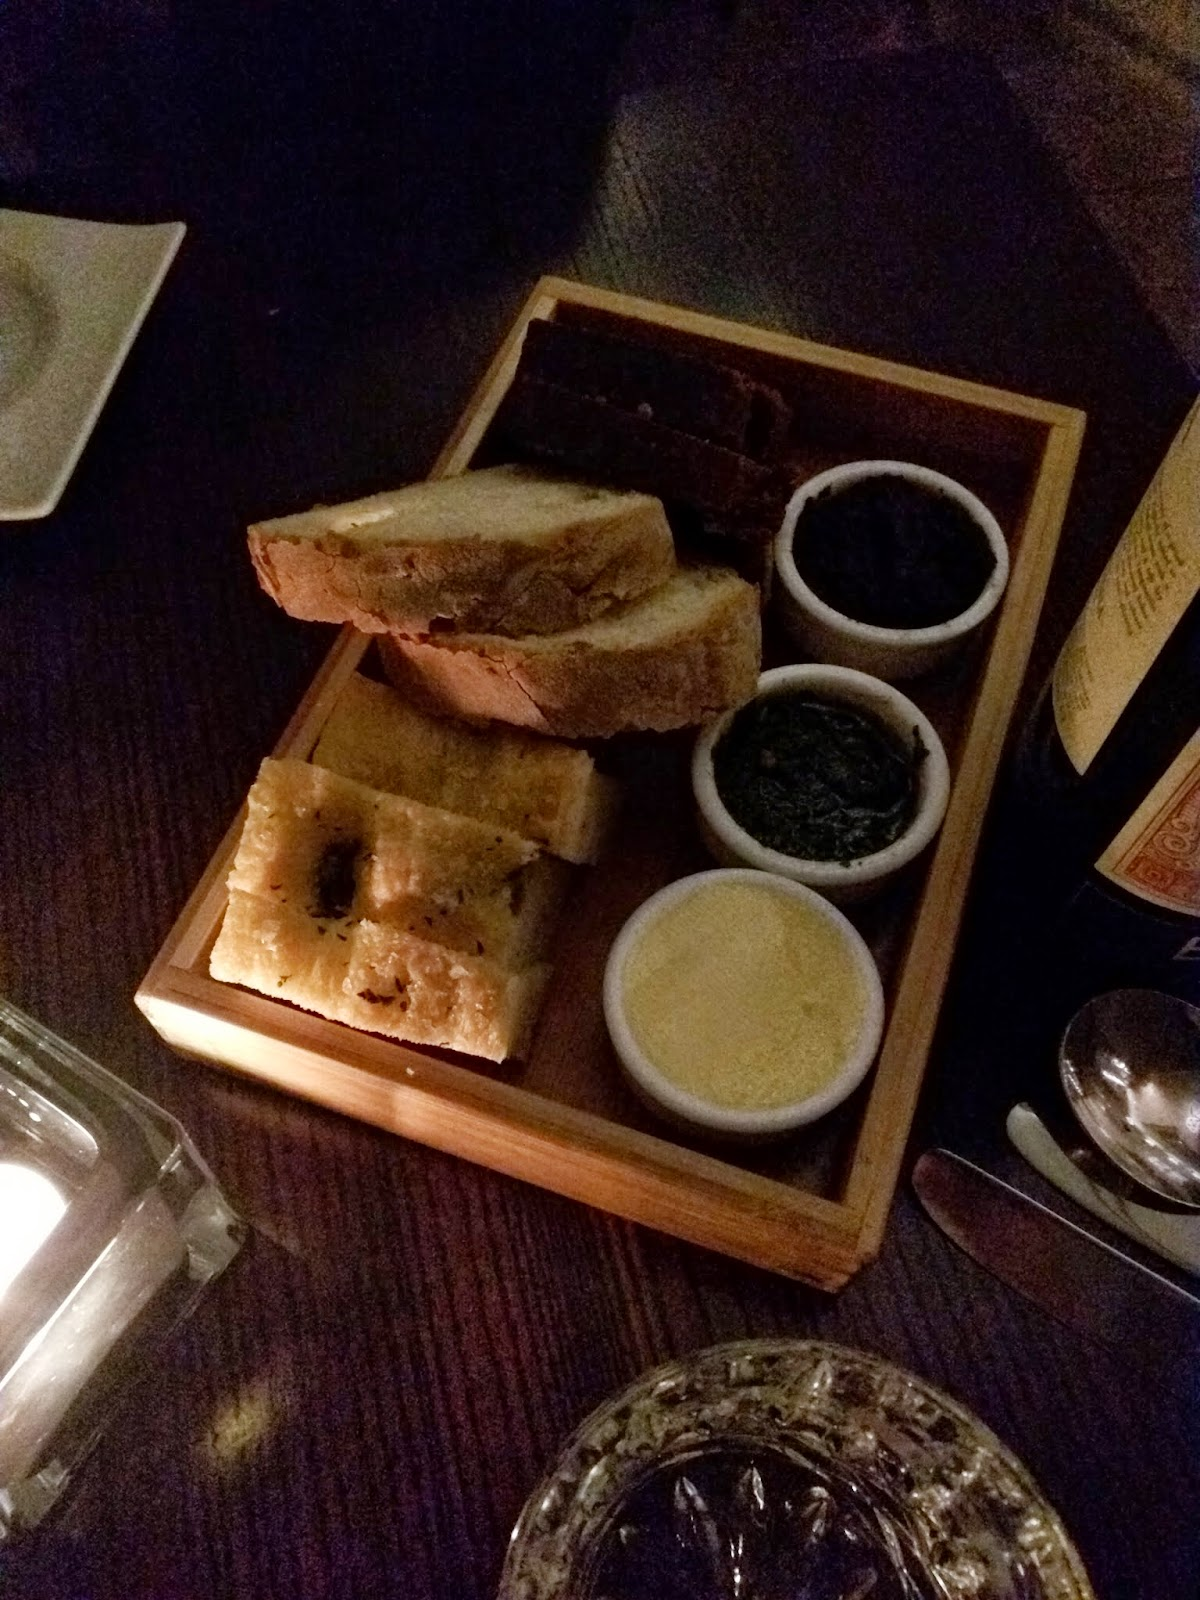 bread with trio of spreads